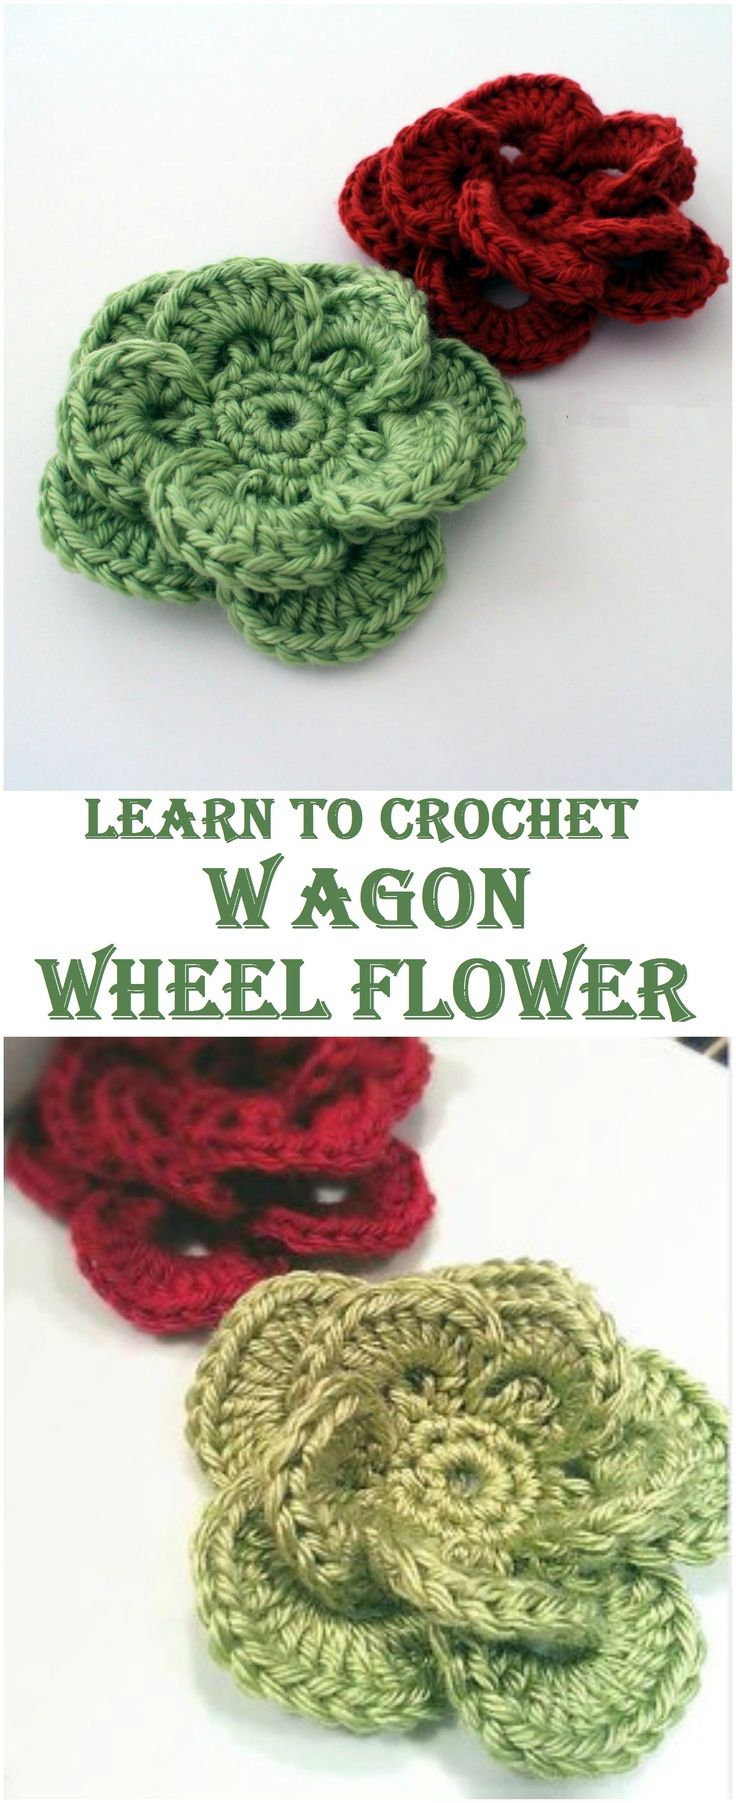 Crochet Wagon Wheel Flower